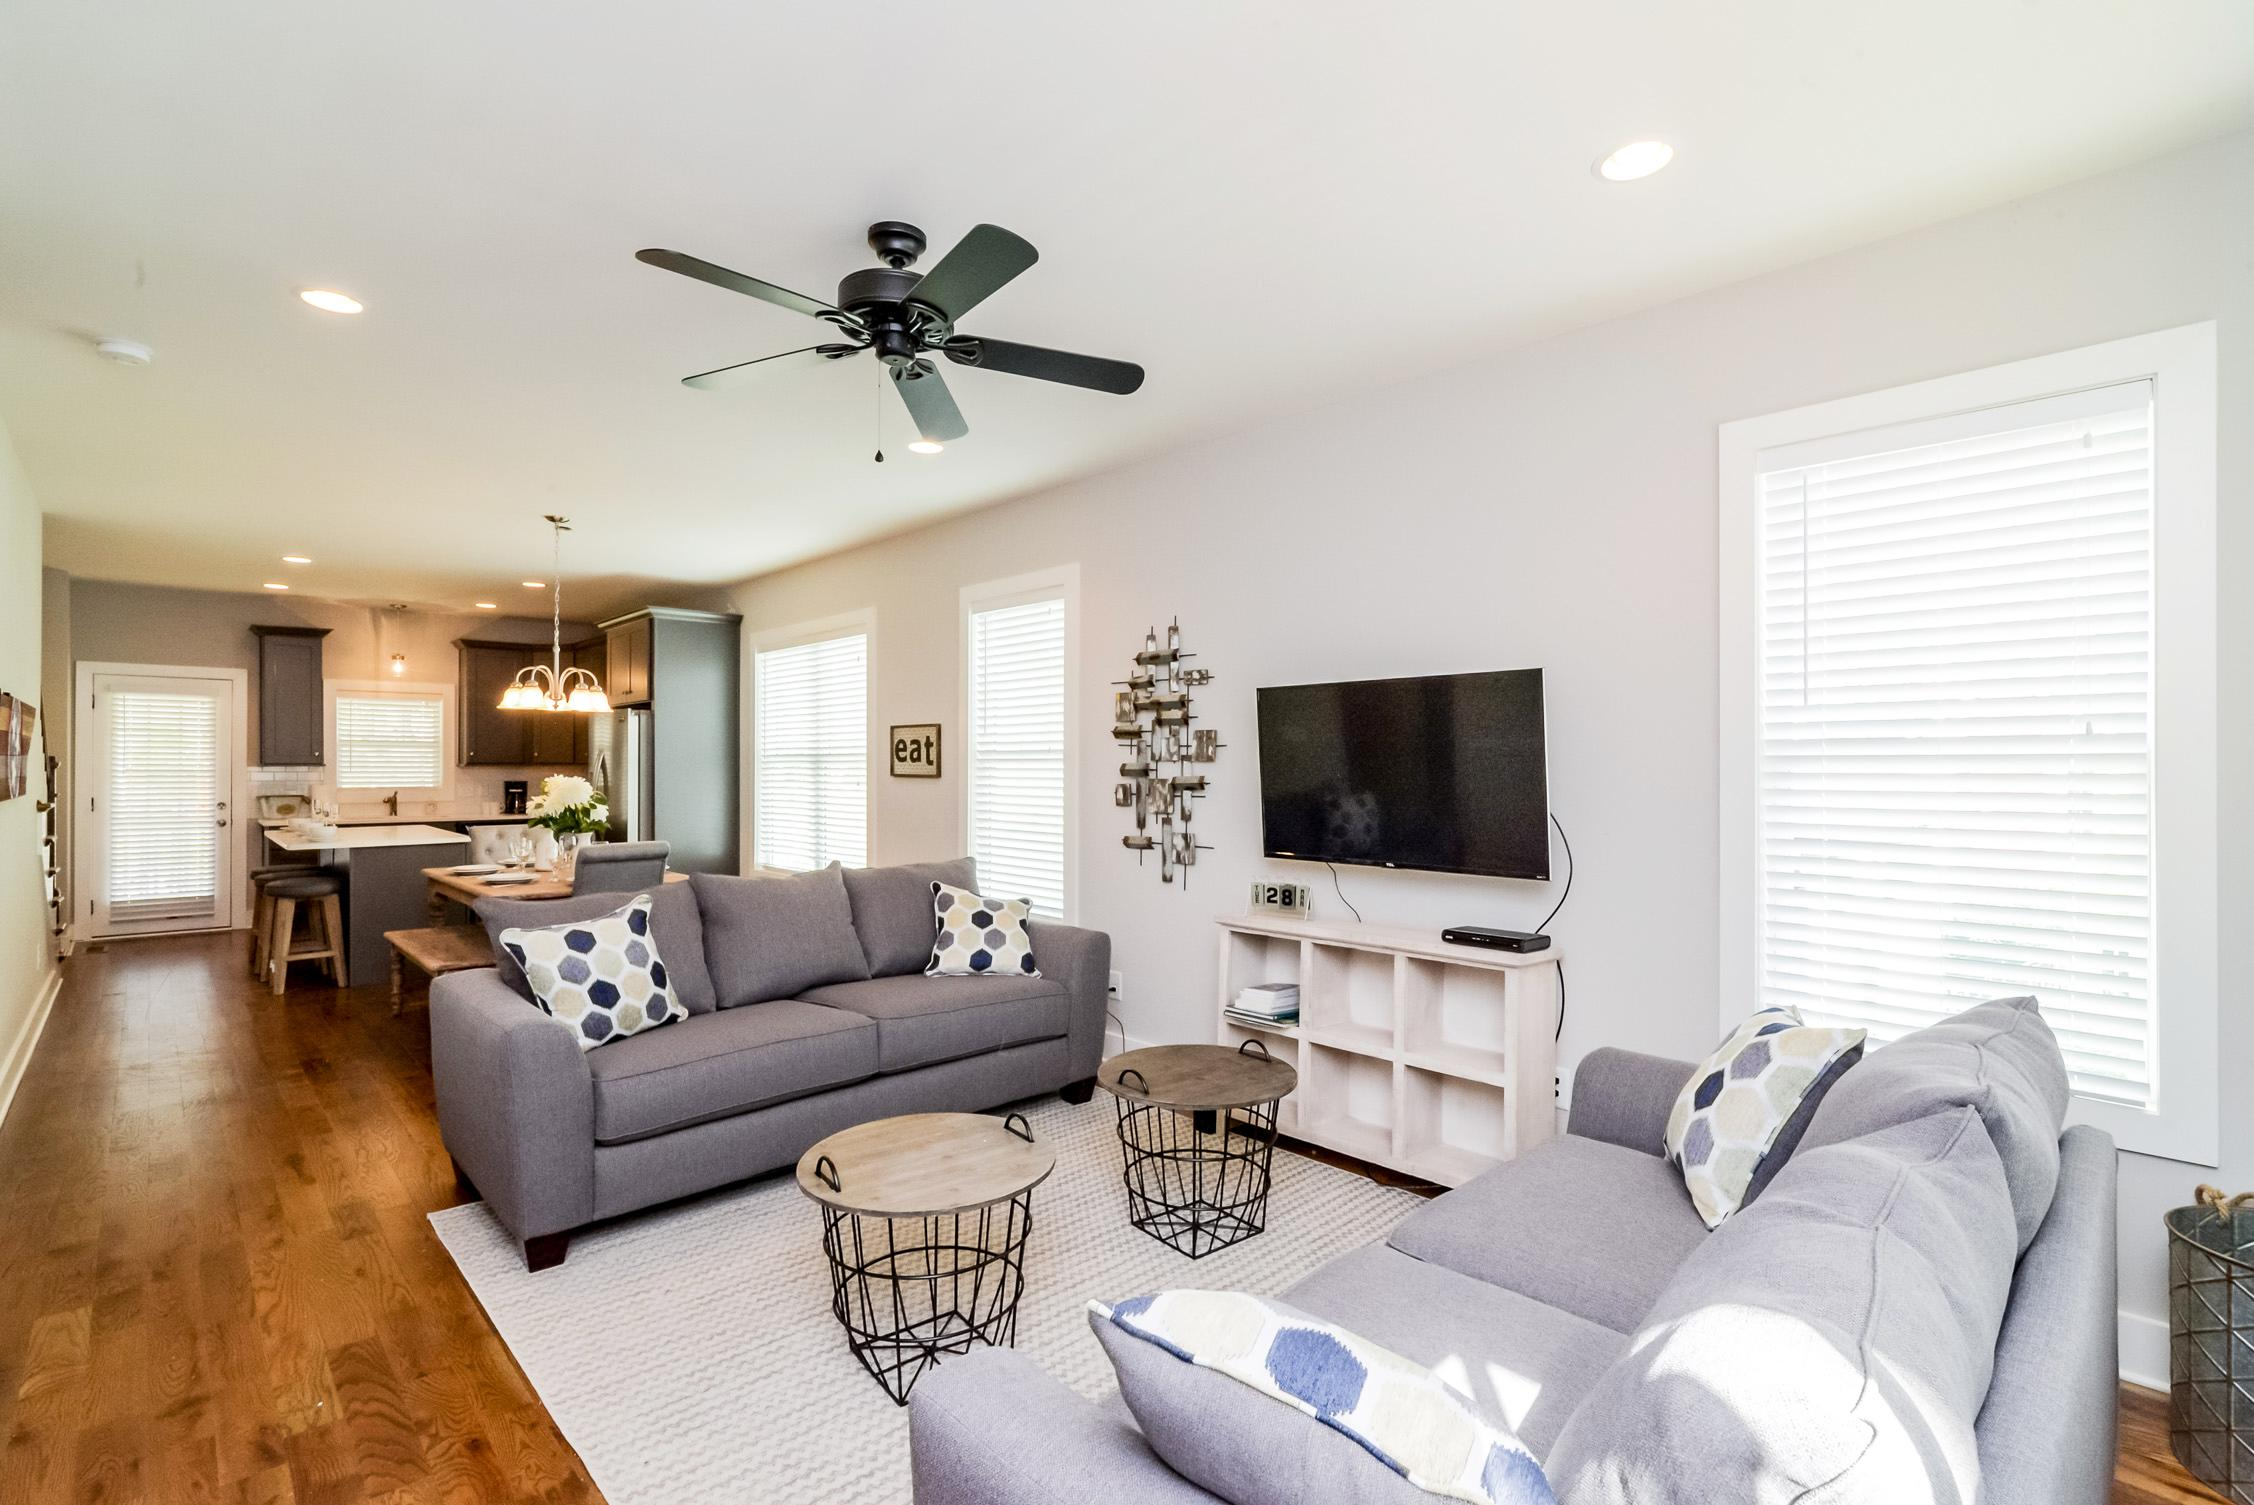 Welcome to Nashville! This duplex is professionally managed by TurnKey Vacation Rentals.